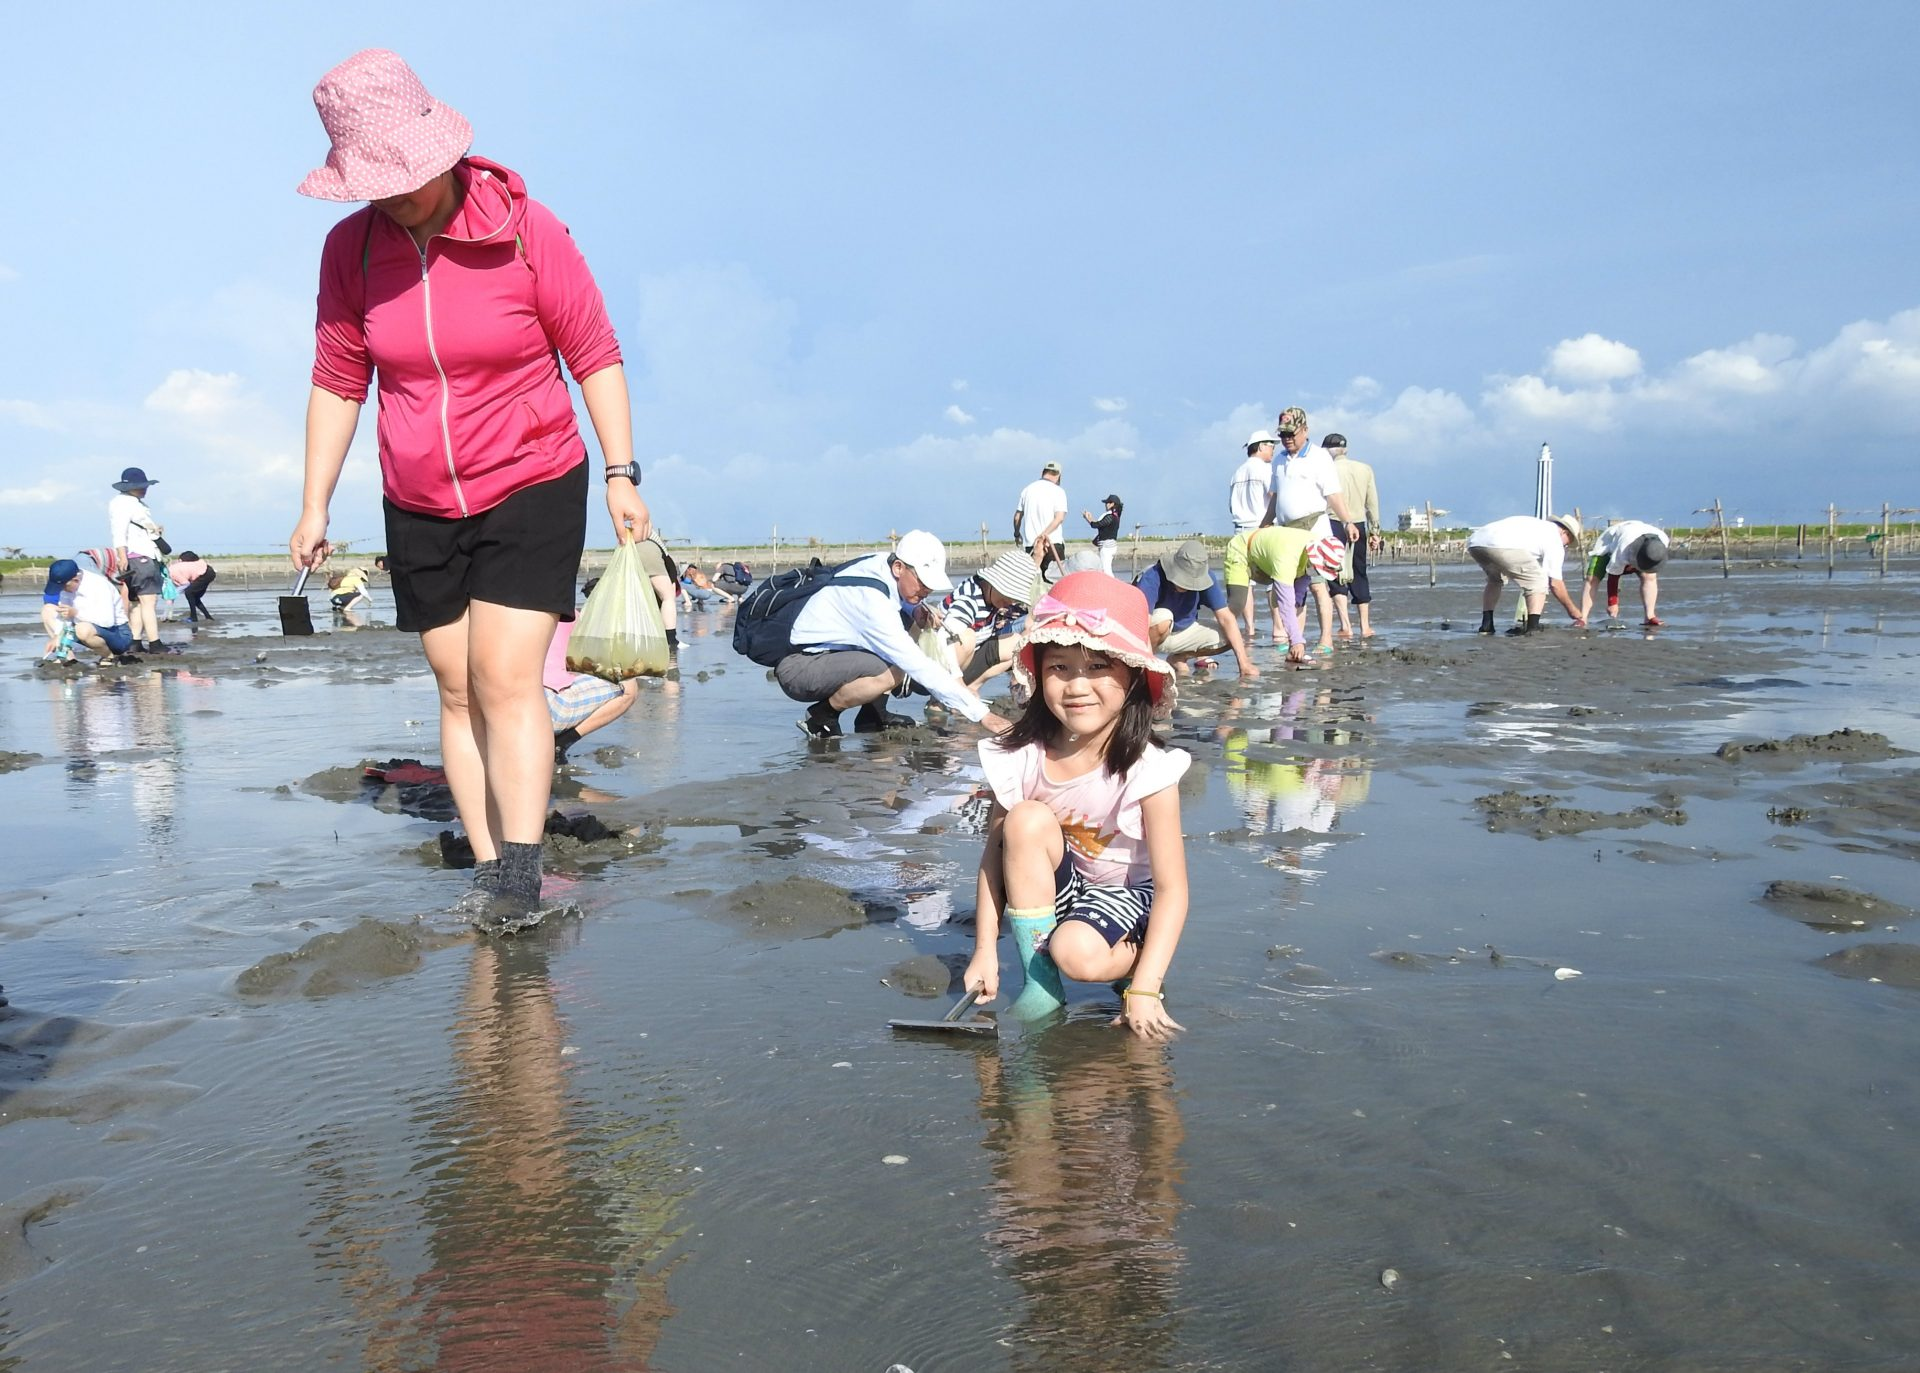 Visitors dig clams and forage for fiddler crabs in the mud. (Image: Billy Shyu/ Vision Times)